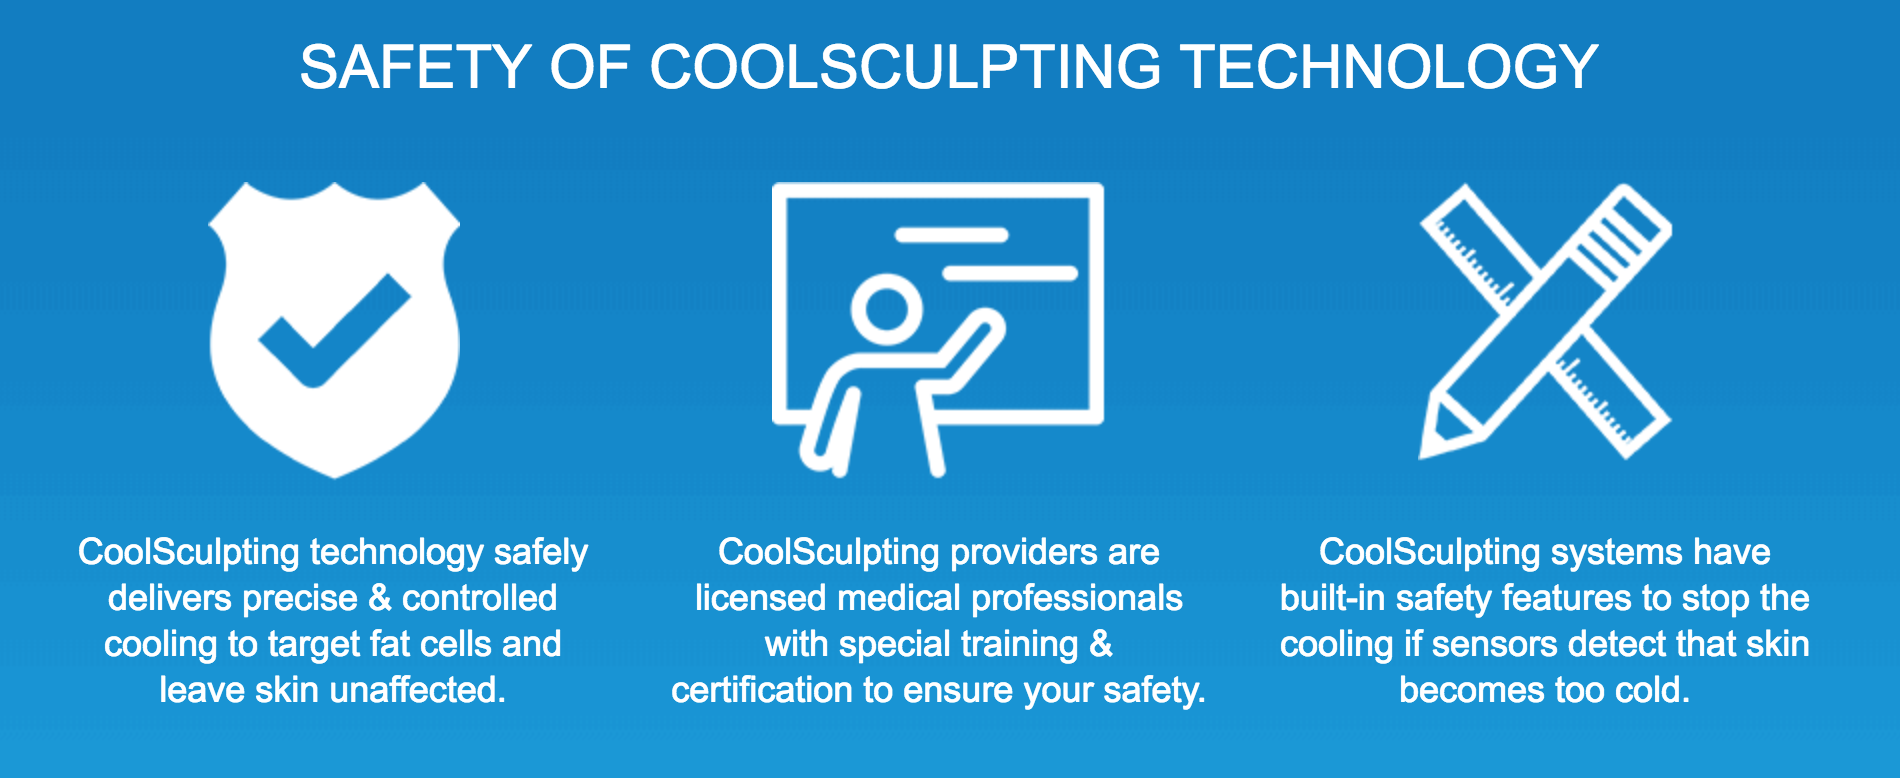 coolsculptingsafety